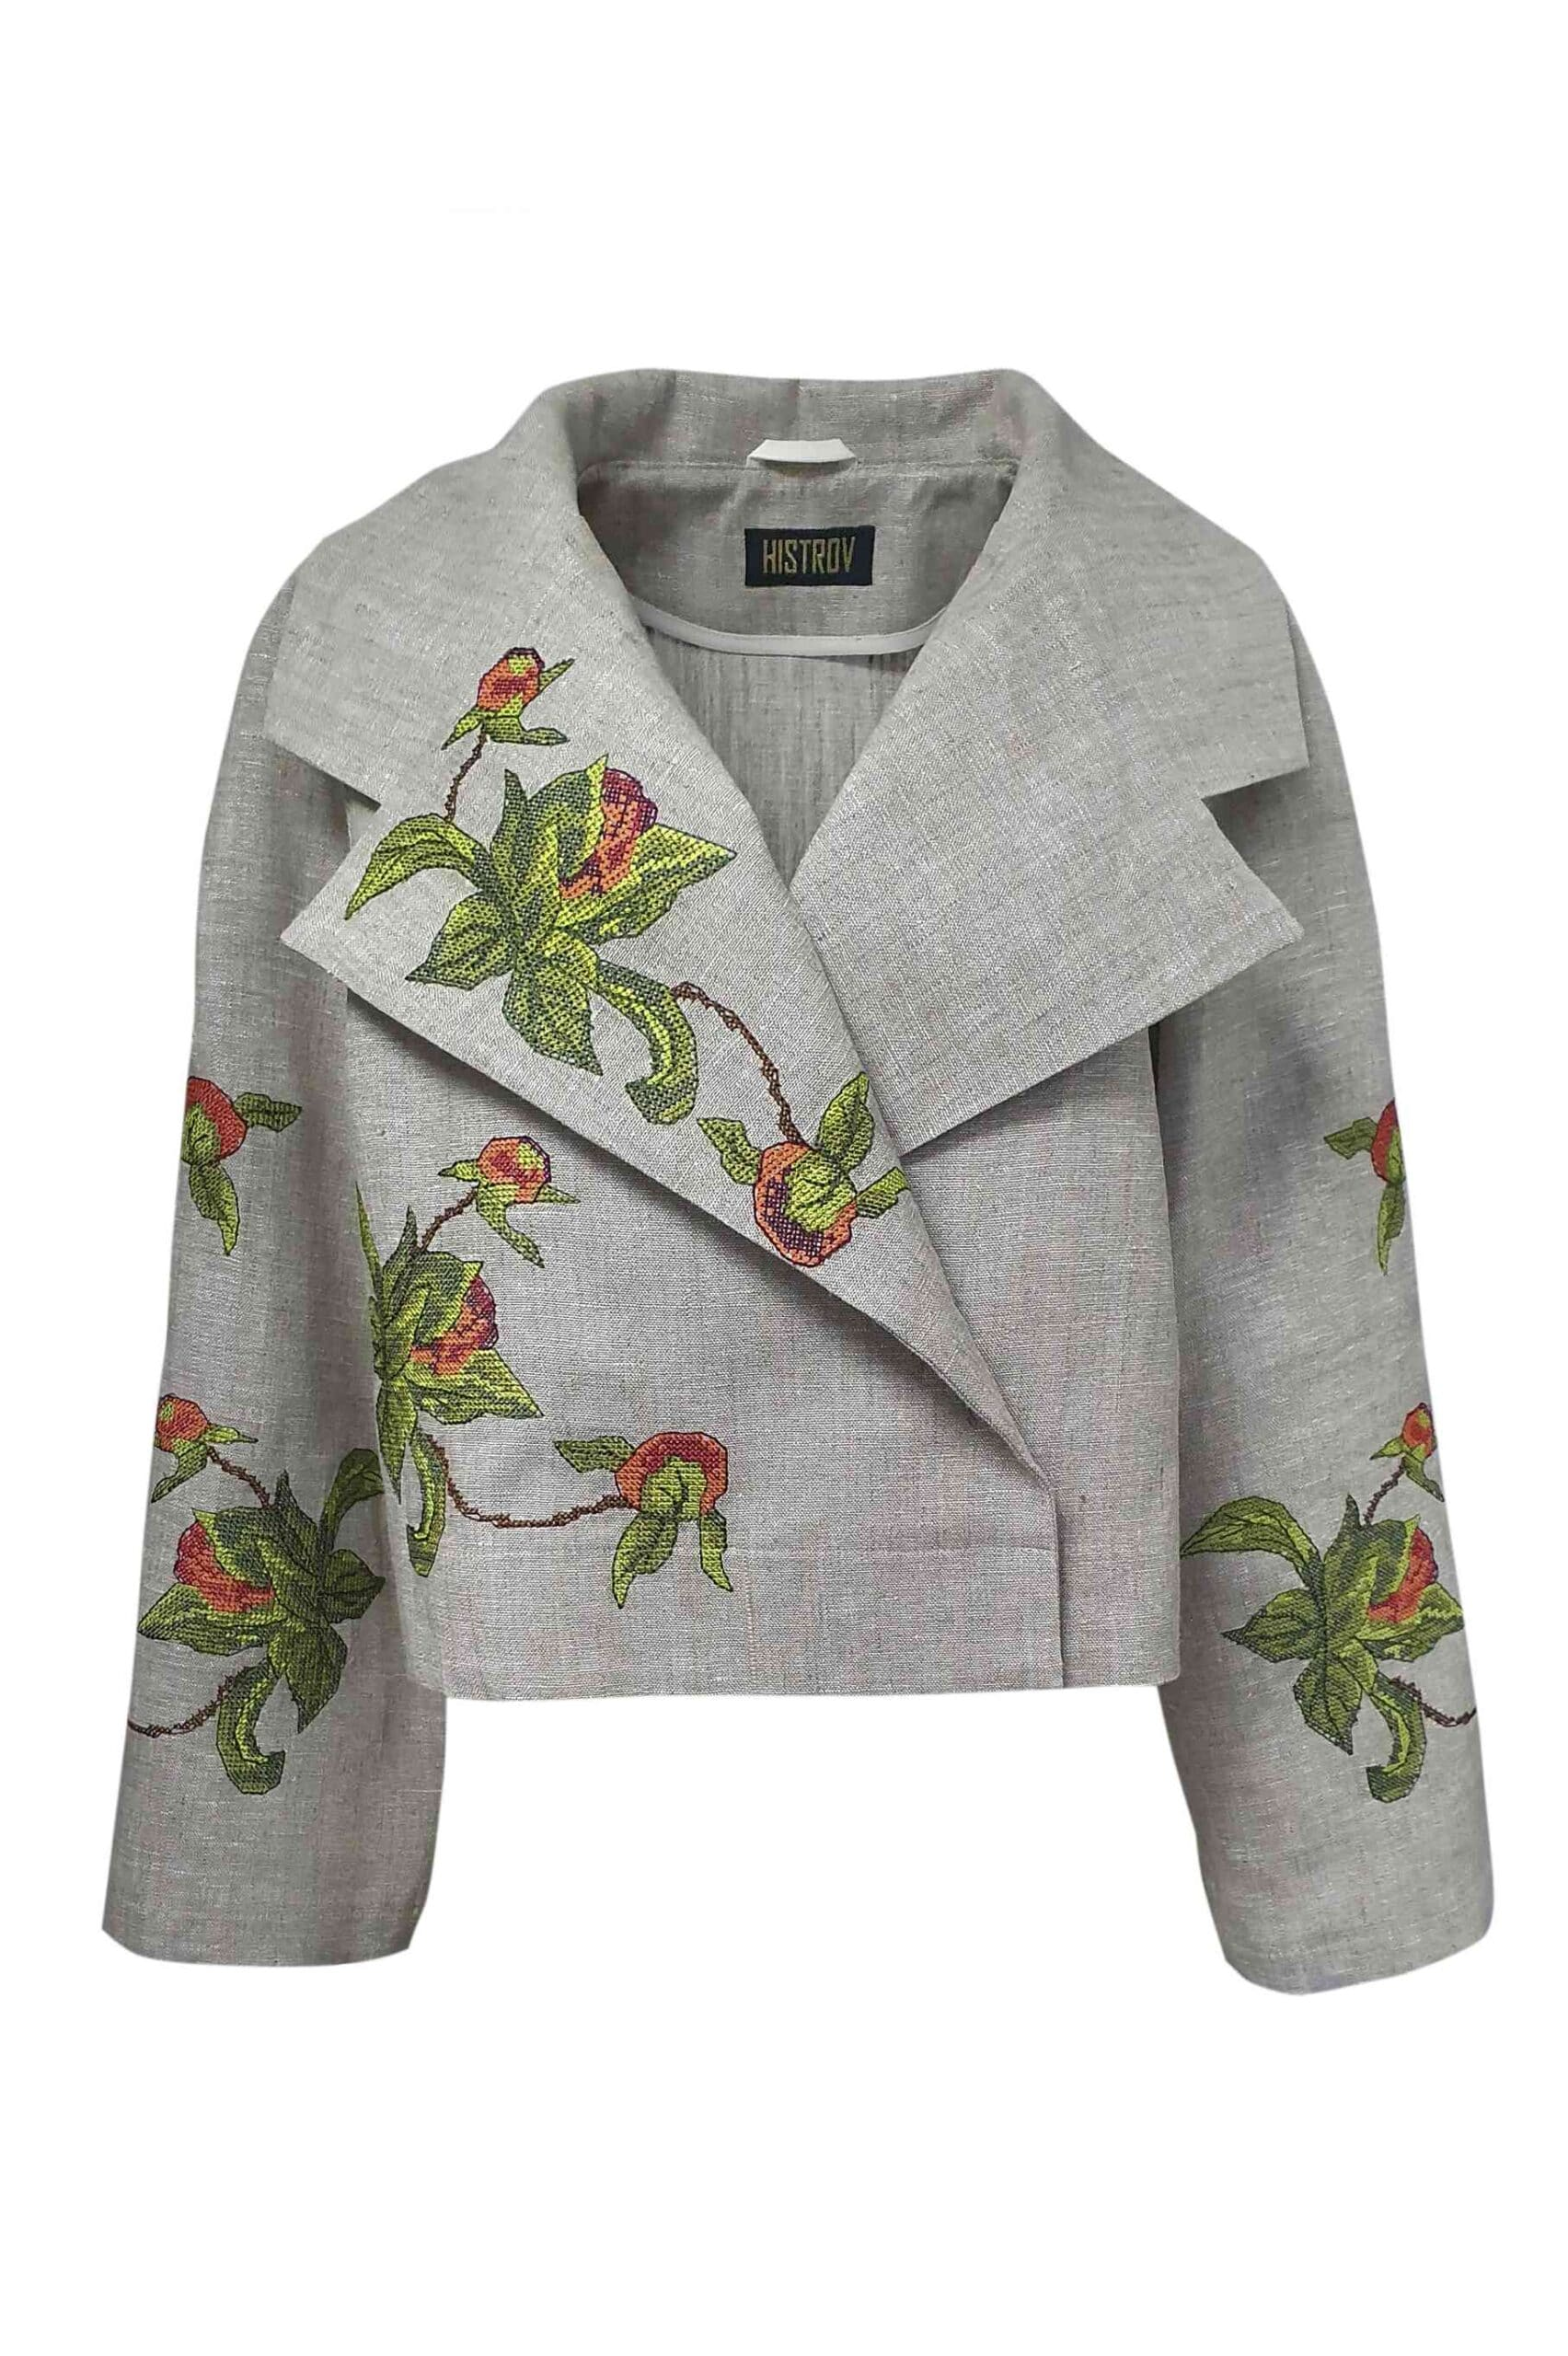 Buy a jacket with embroidery